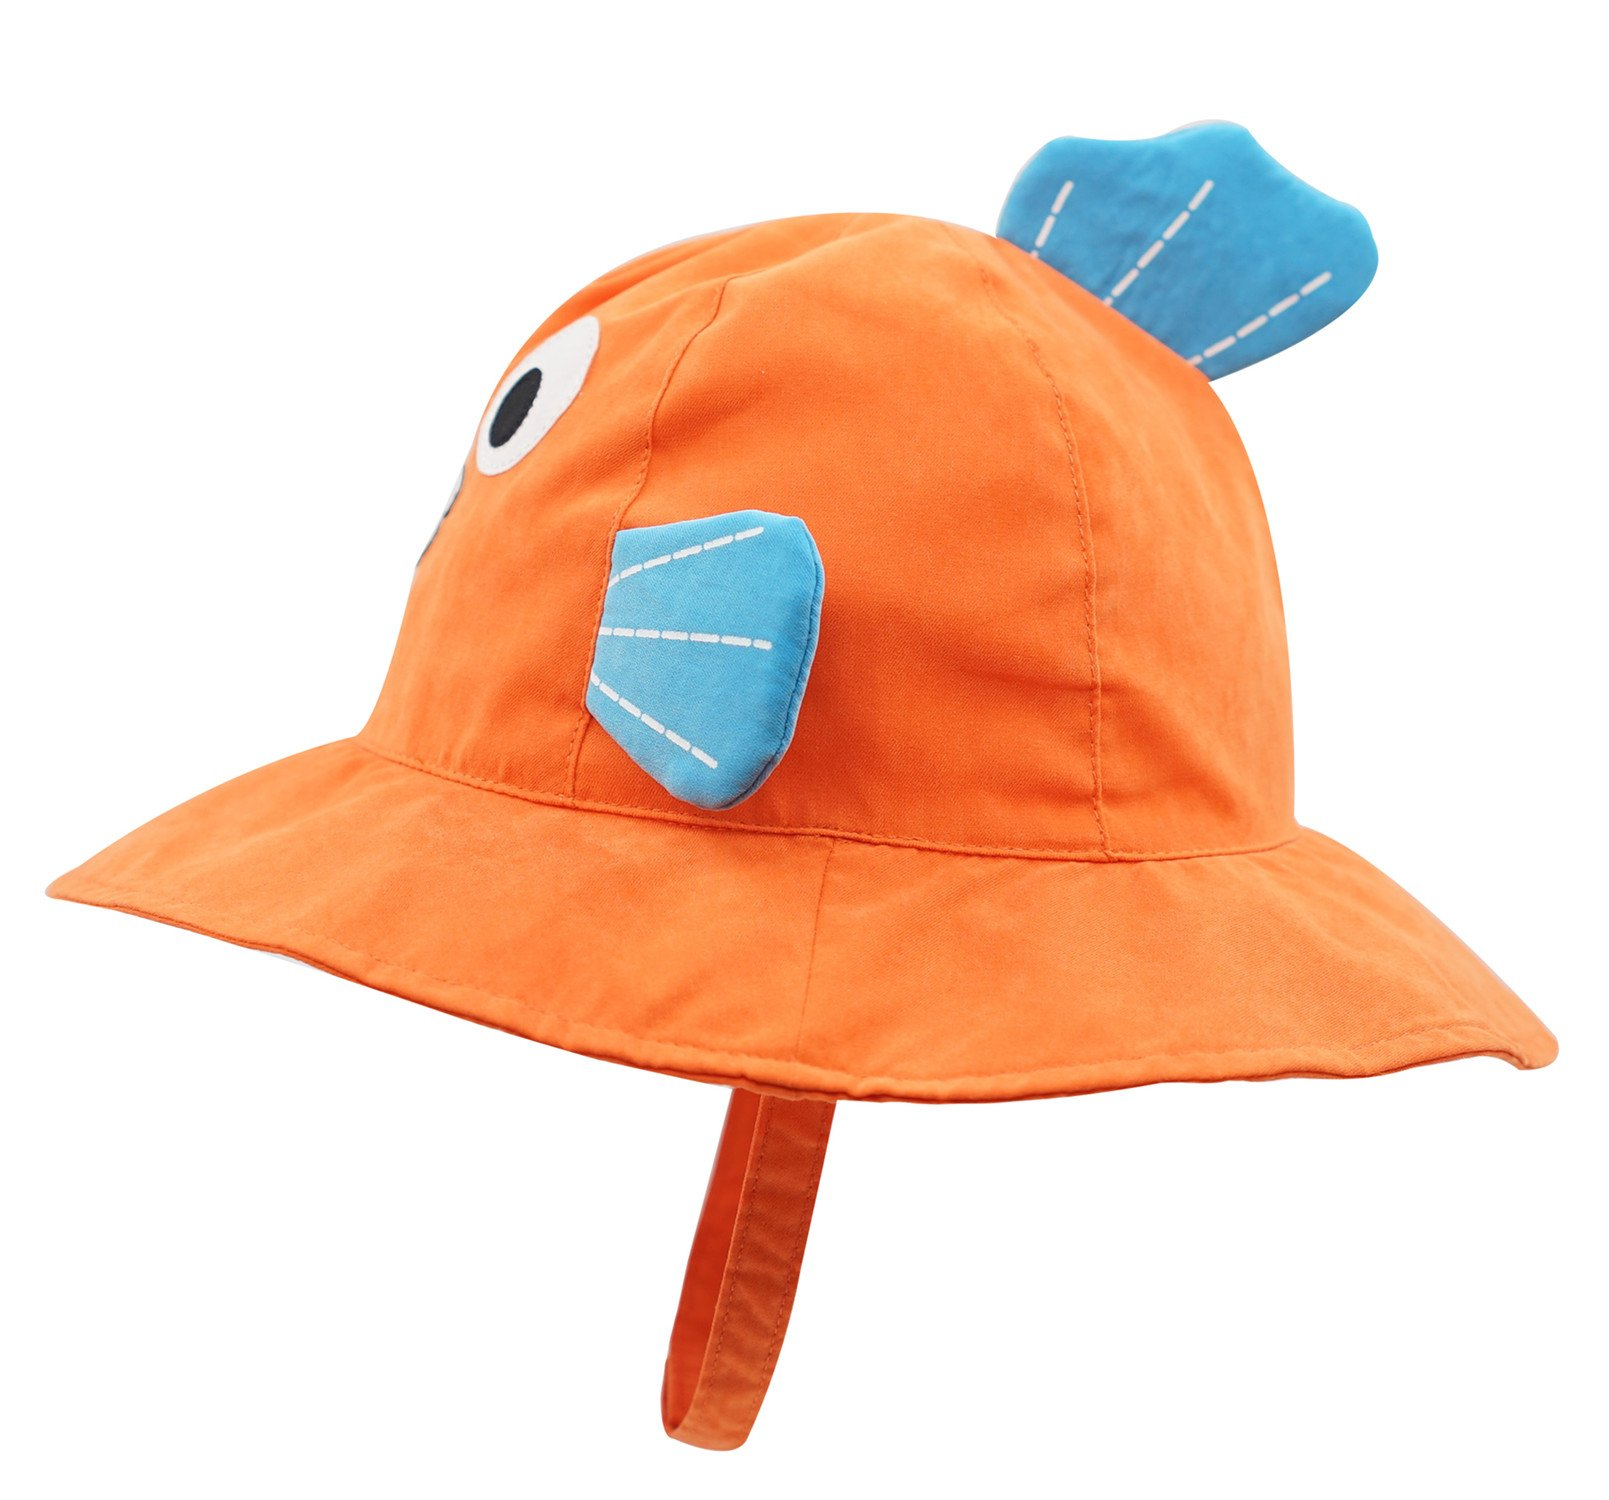 Connectyle Baby Infant Toddler Kids' UPF 50+ Sun Protection Hat Cute Cartoon Bucket Sun Hats by Connectyle (Image #2)